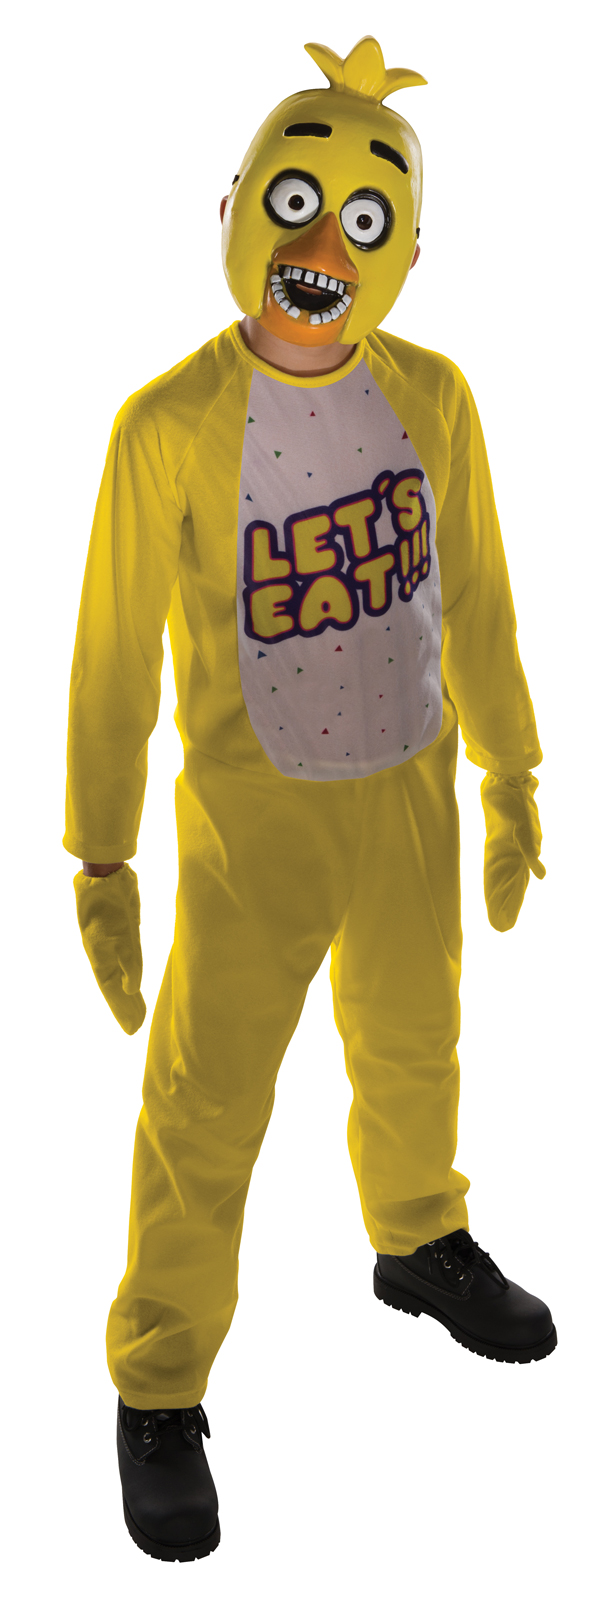 Department costume themes five nights at freddys chica child costume